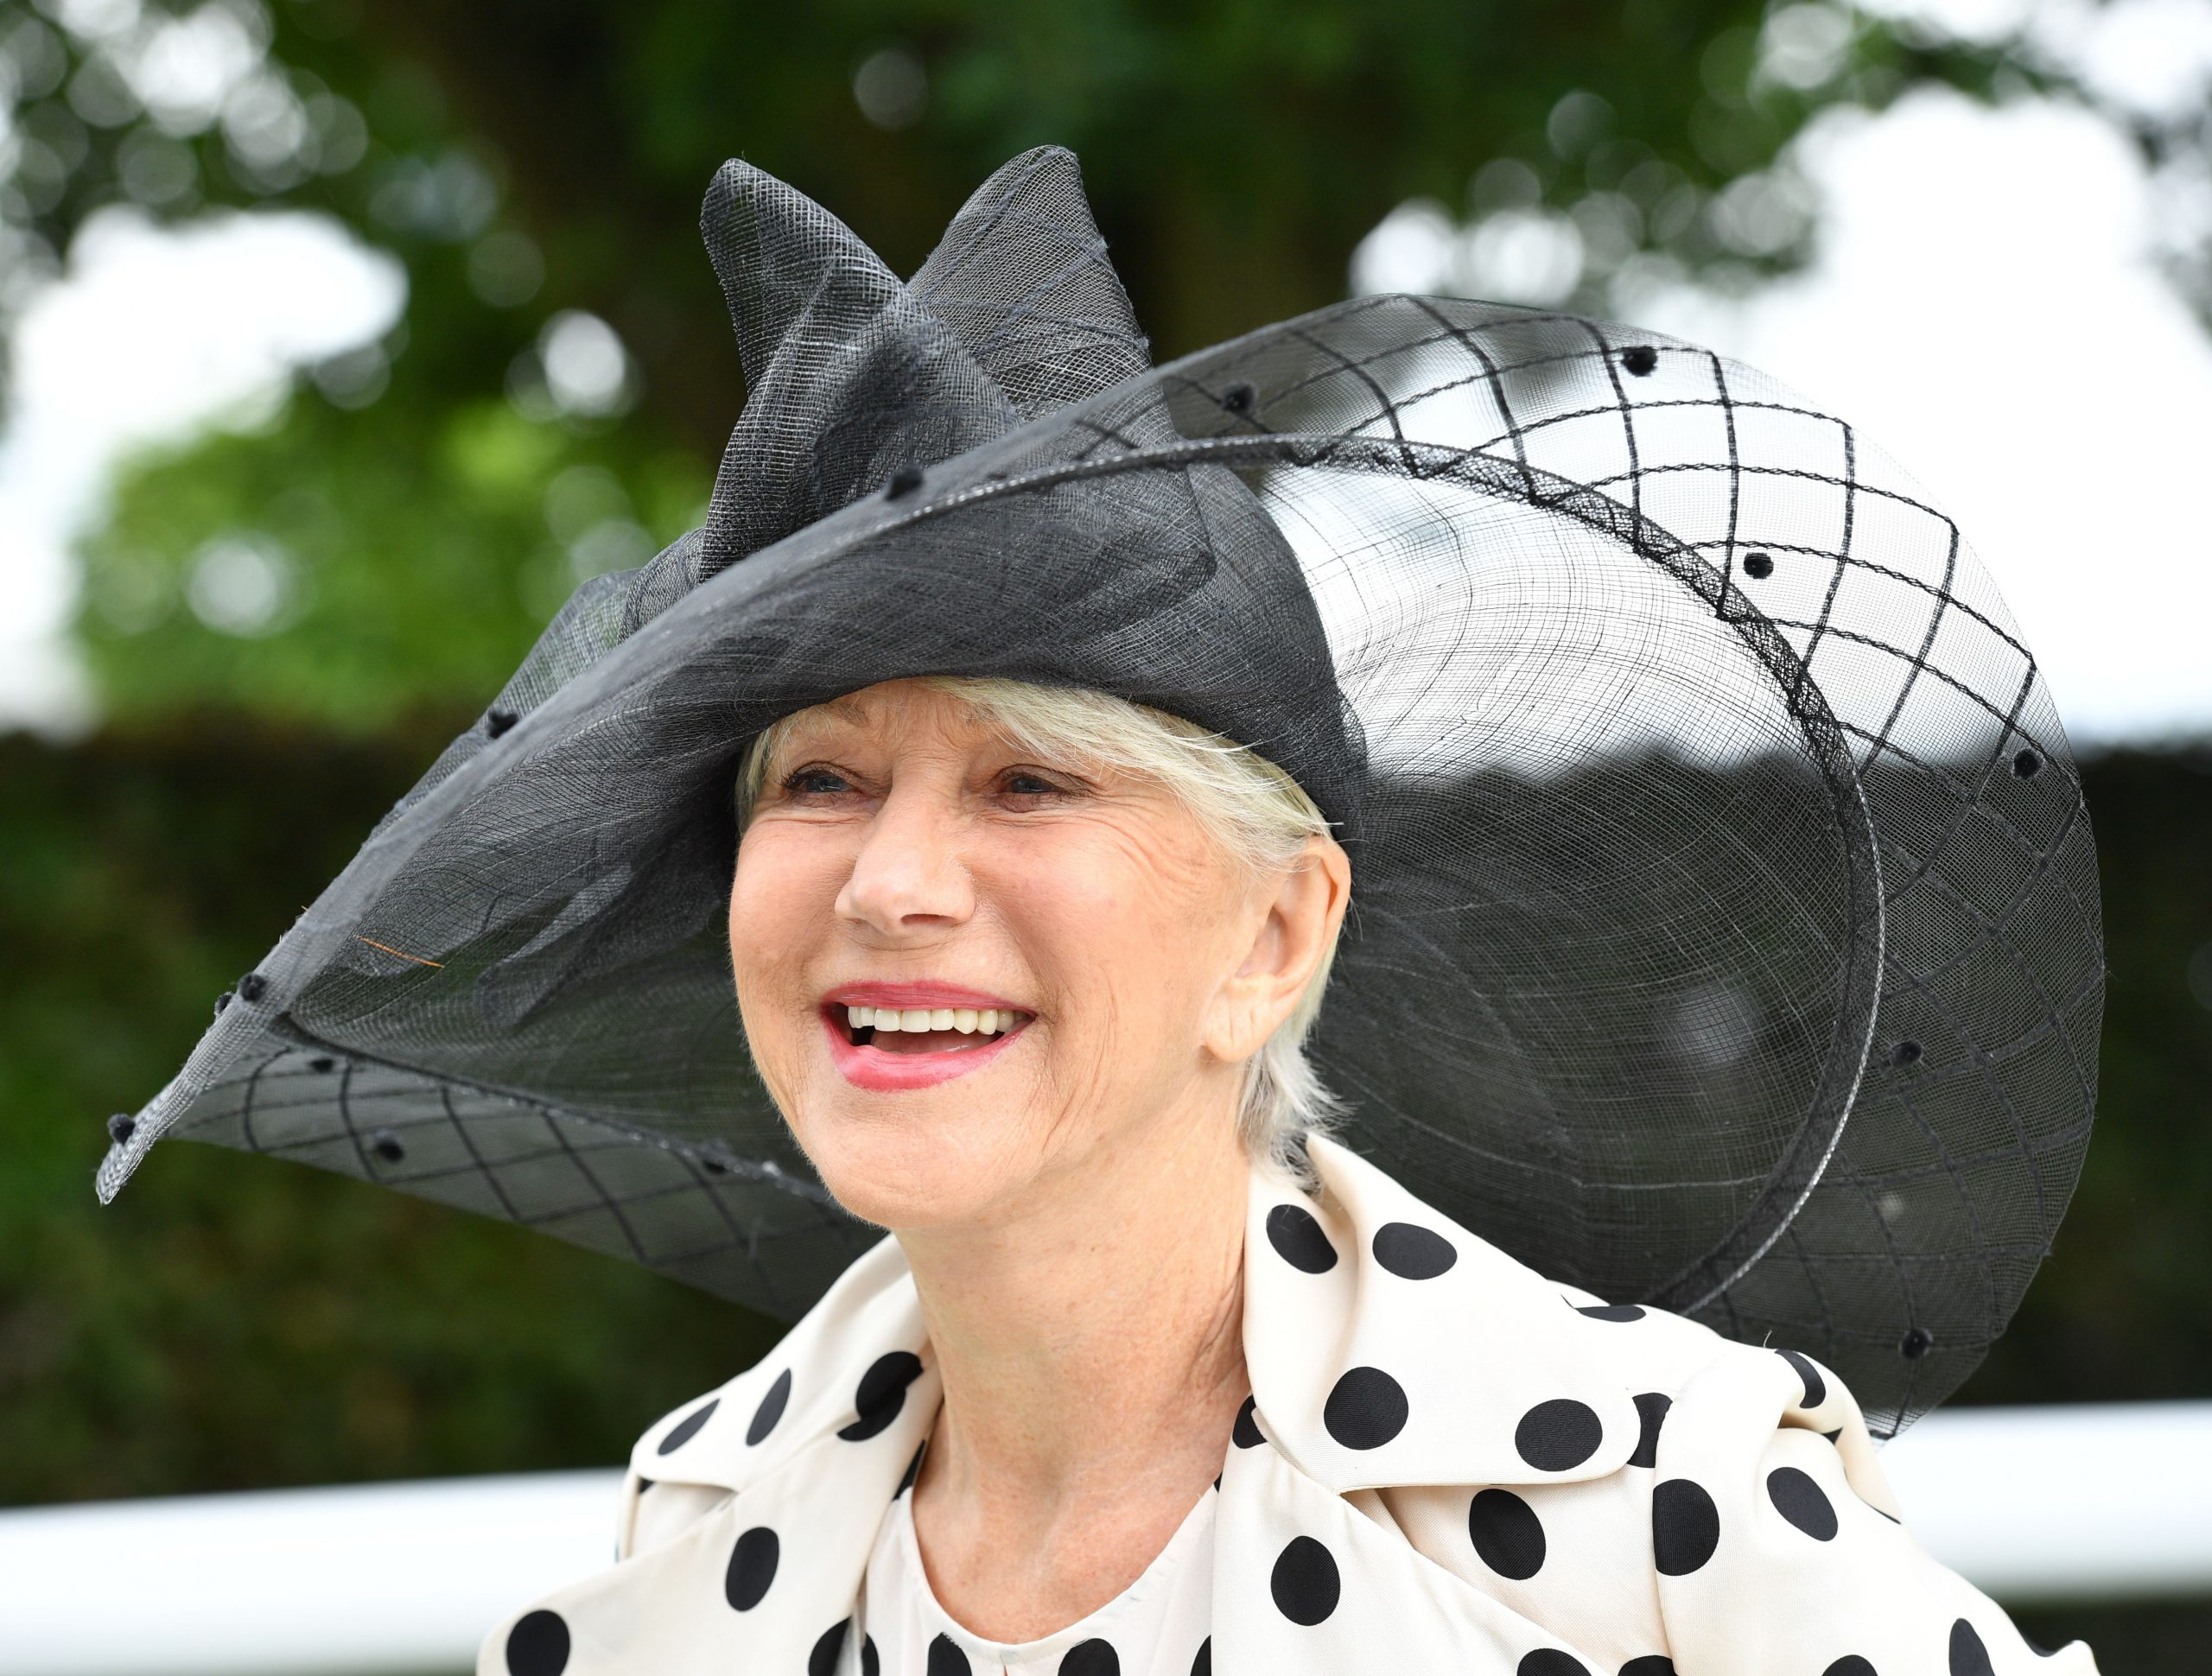 Helen Mirren looking regal at the races